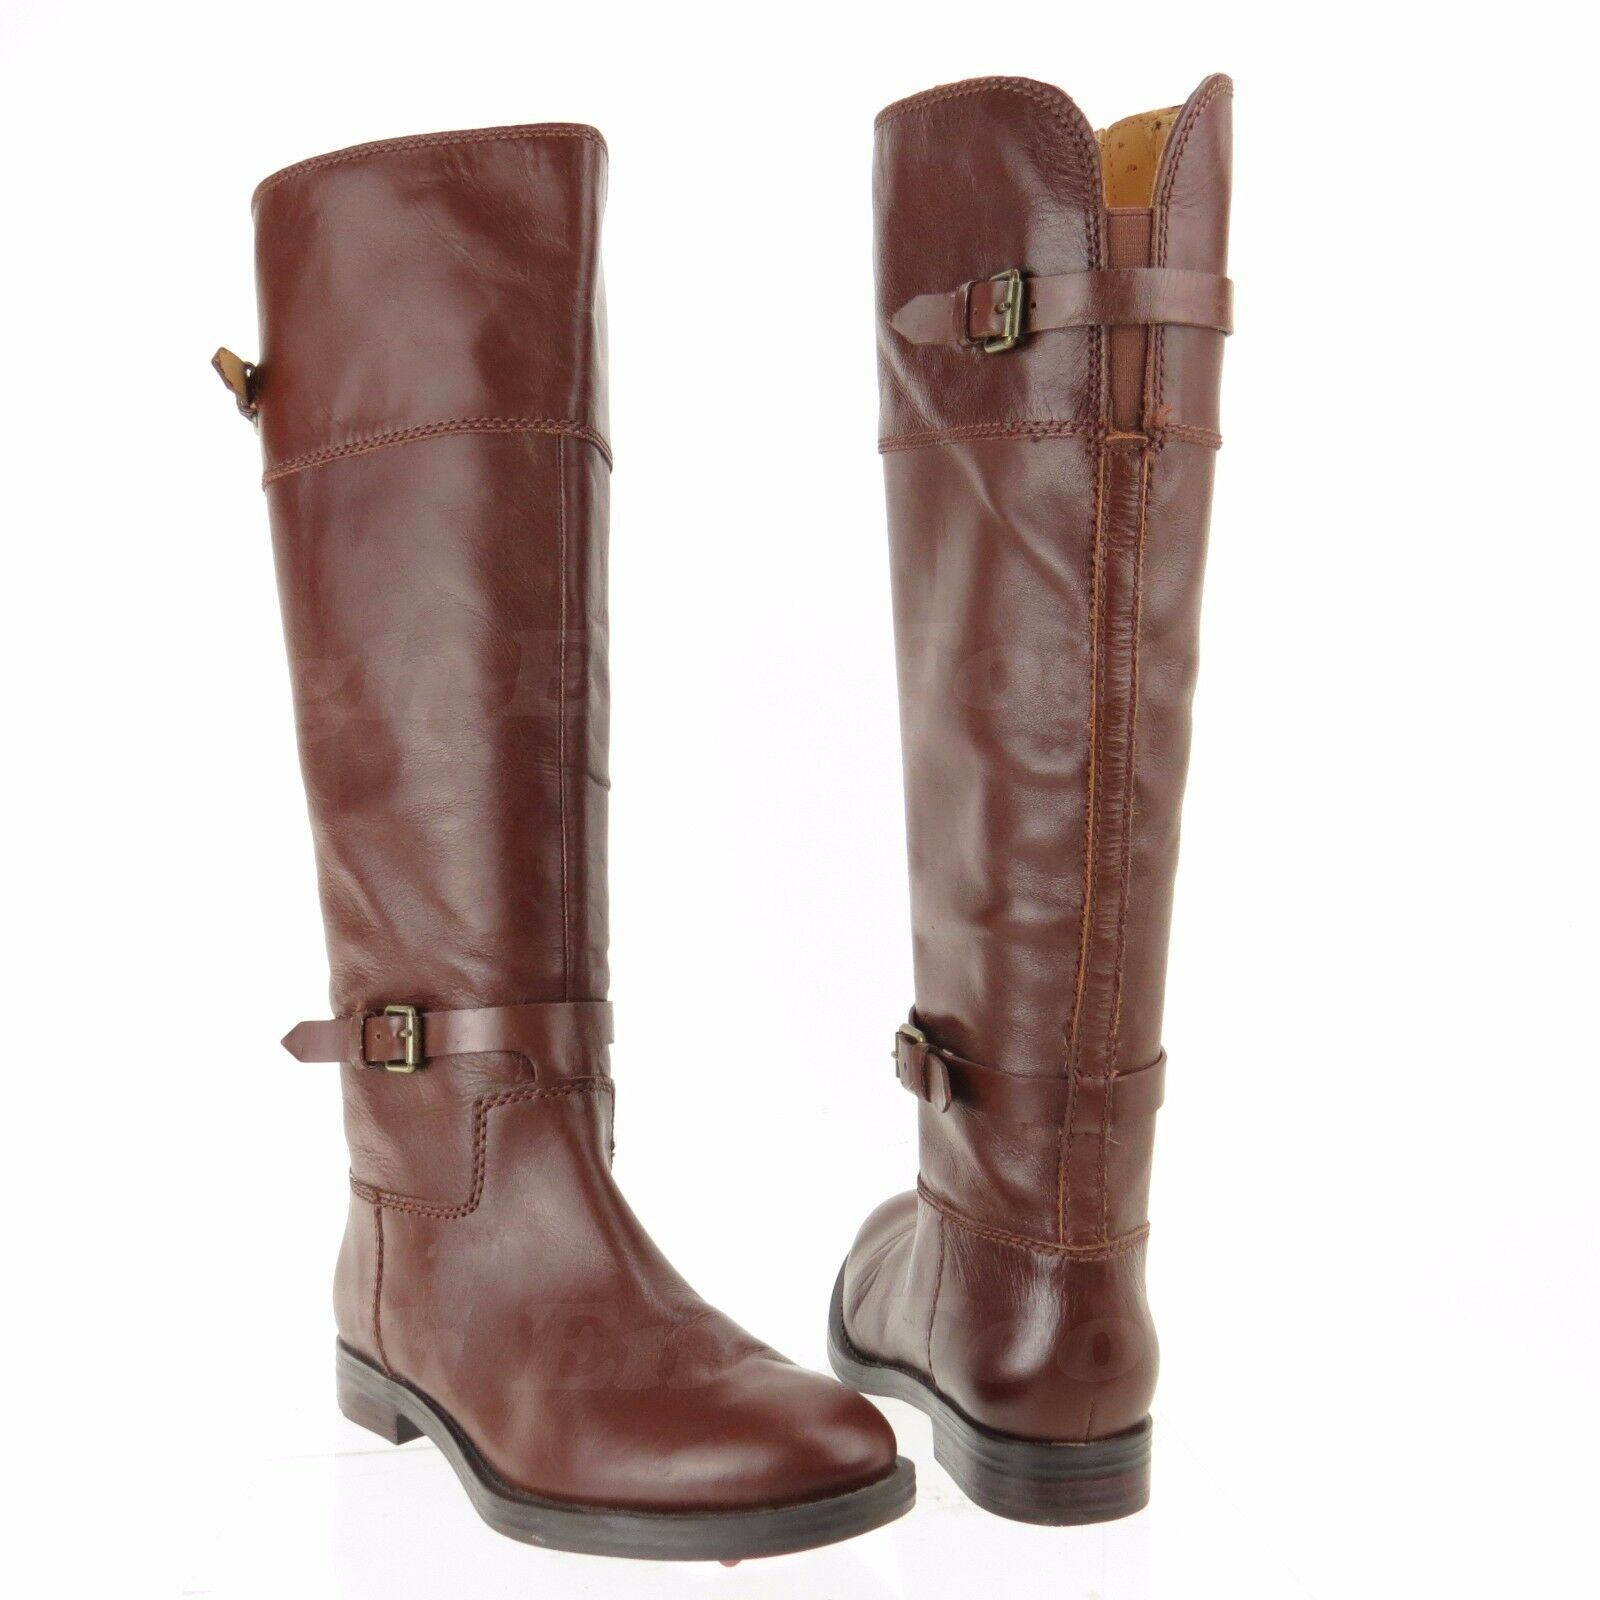 Enzo Angiolini Eero Women's shoes Brown Leather Knee High Boots Sz 6 M